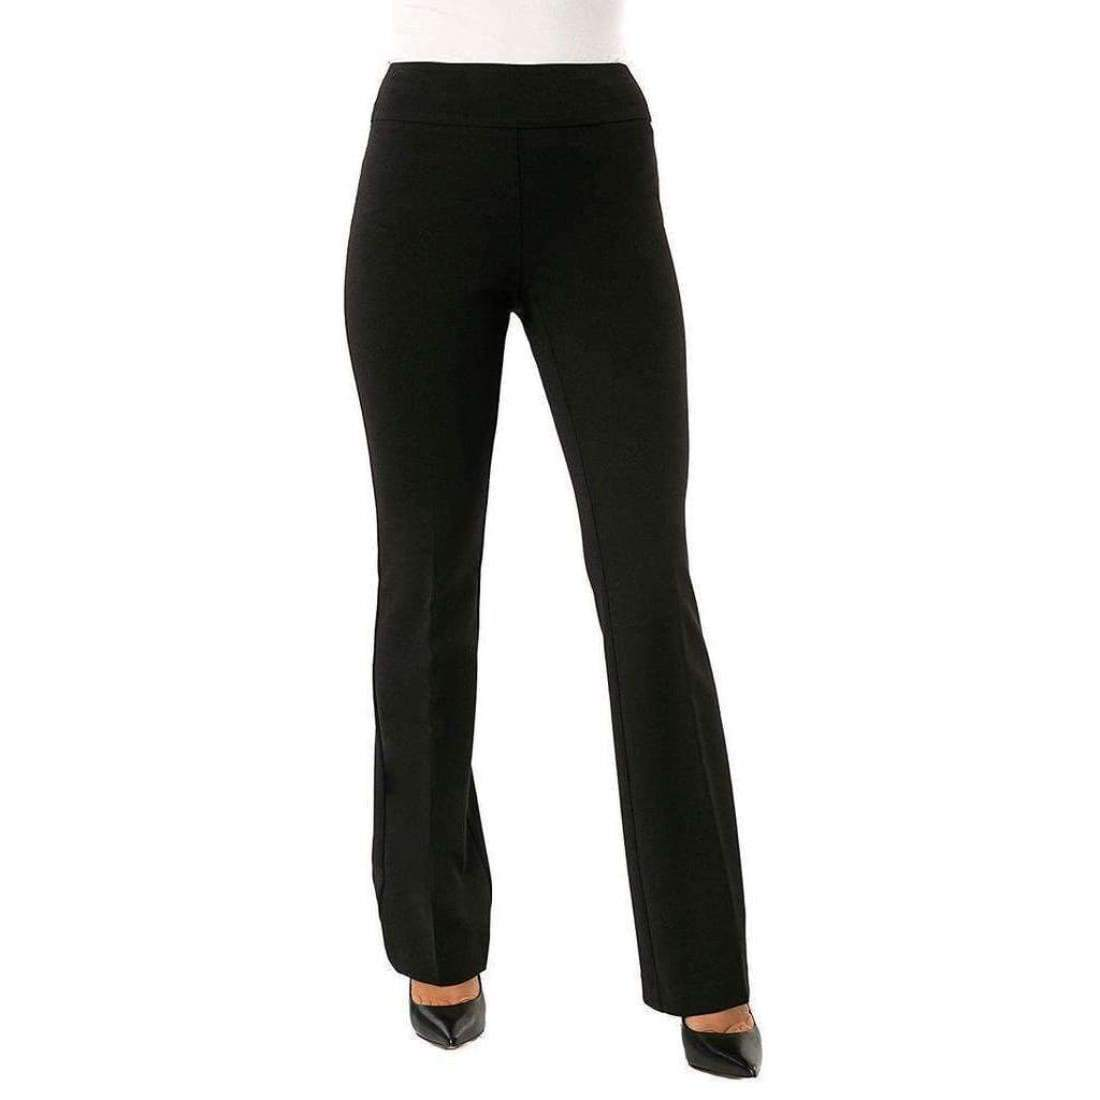 Up! Womens Boot Stretch Crepe Pants Flatten And Flatter Style 65249 Color Black Pants